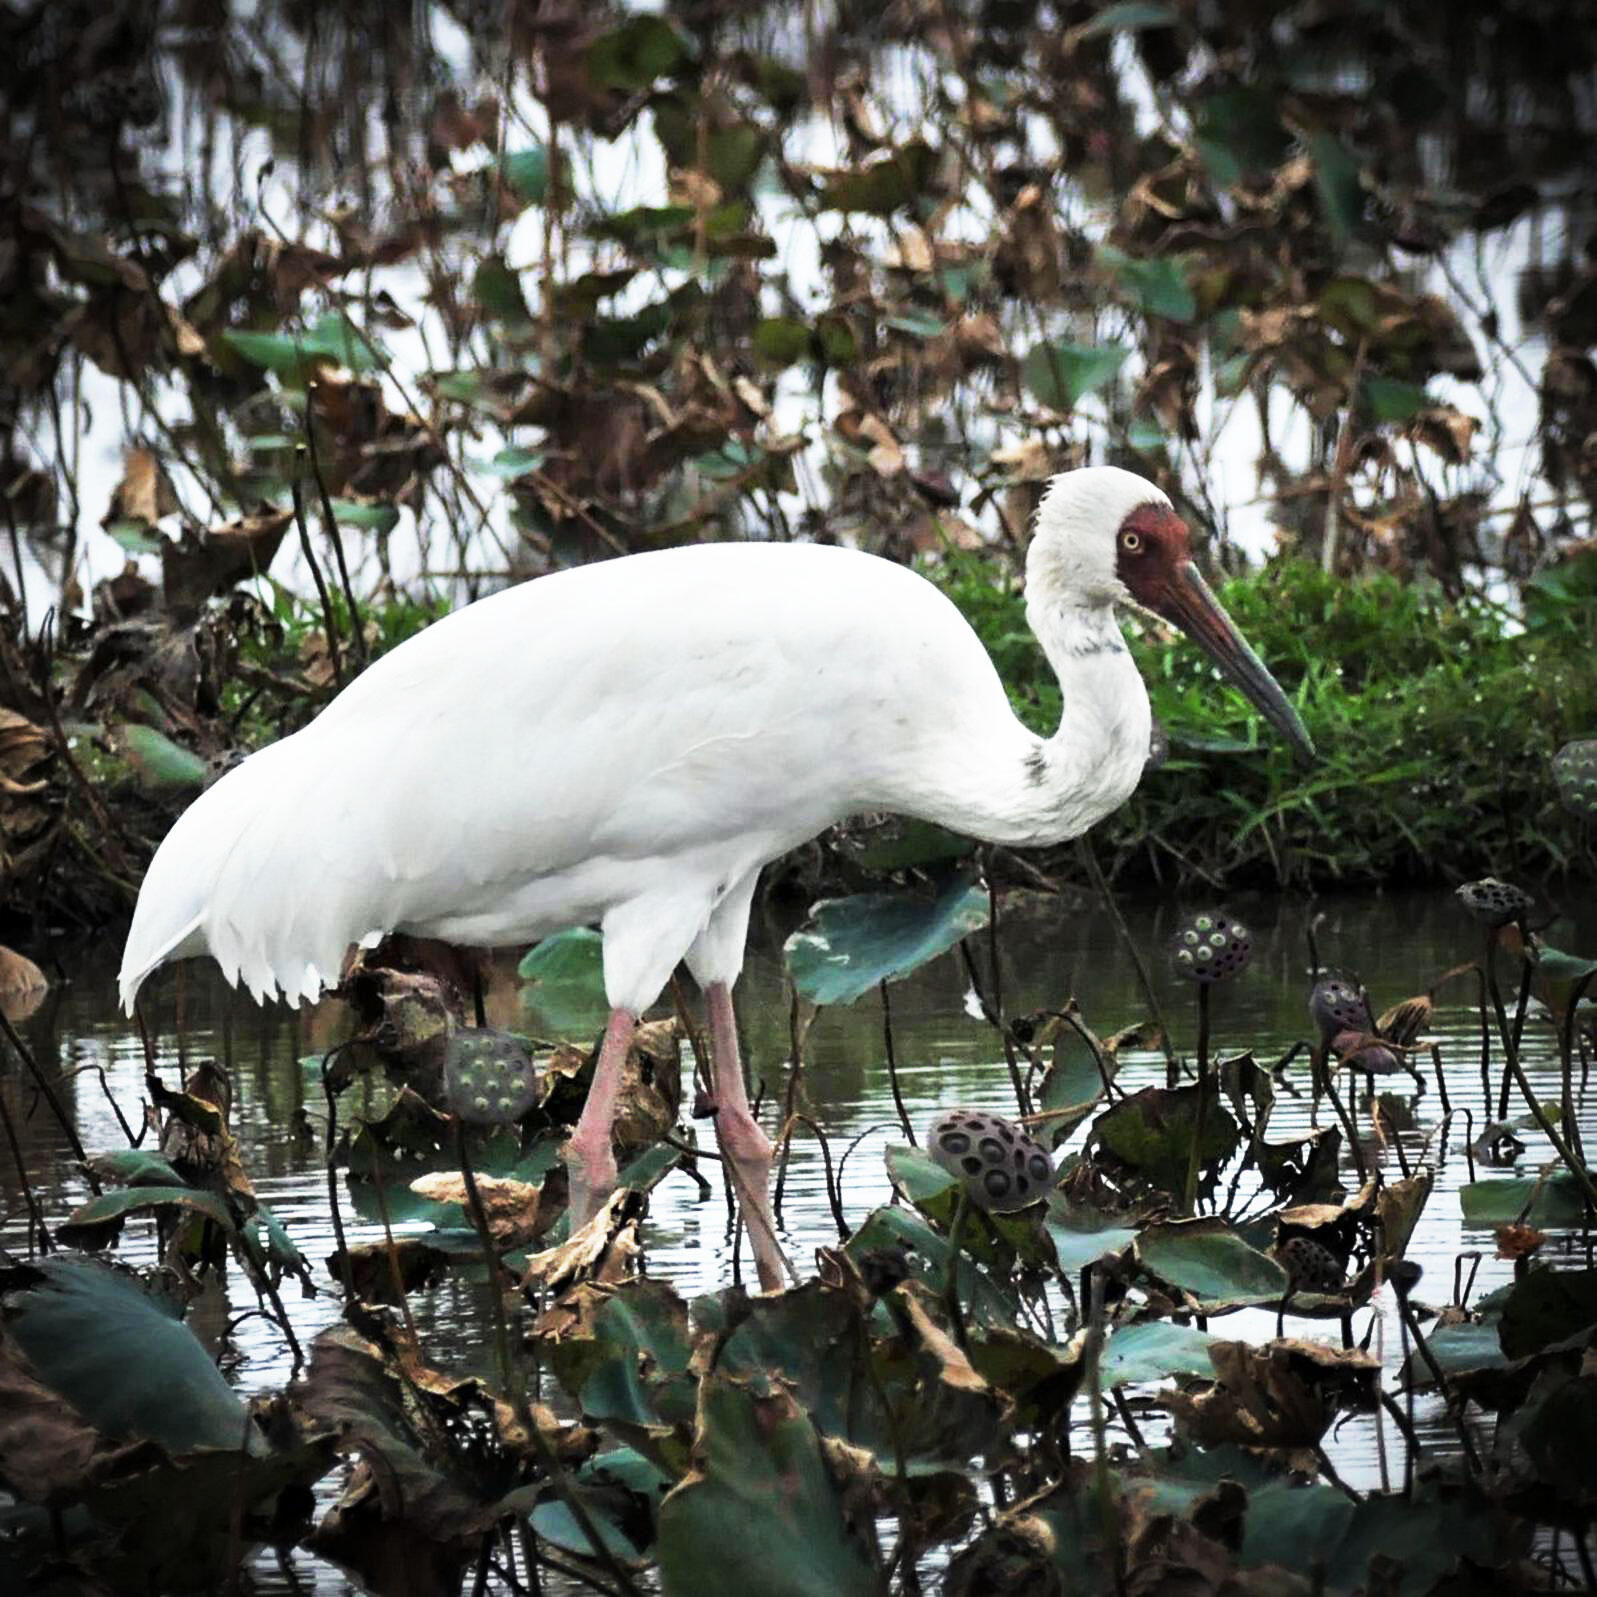 This wayward Siberian Crane arrived in Taiwan almost a year ago and has won the hearts of locals. Noah Strycker